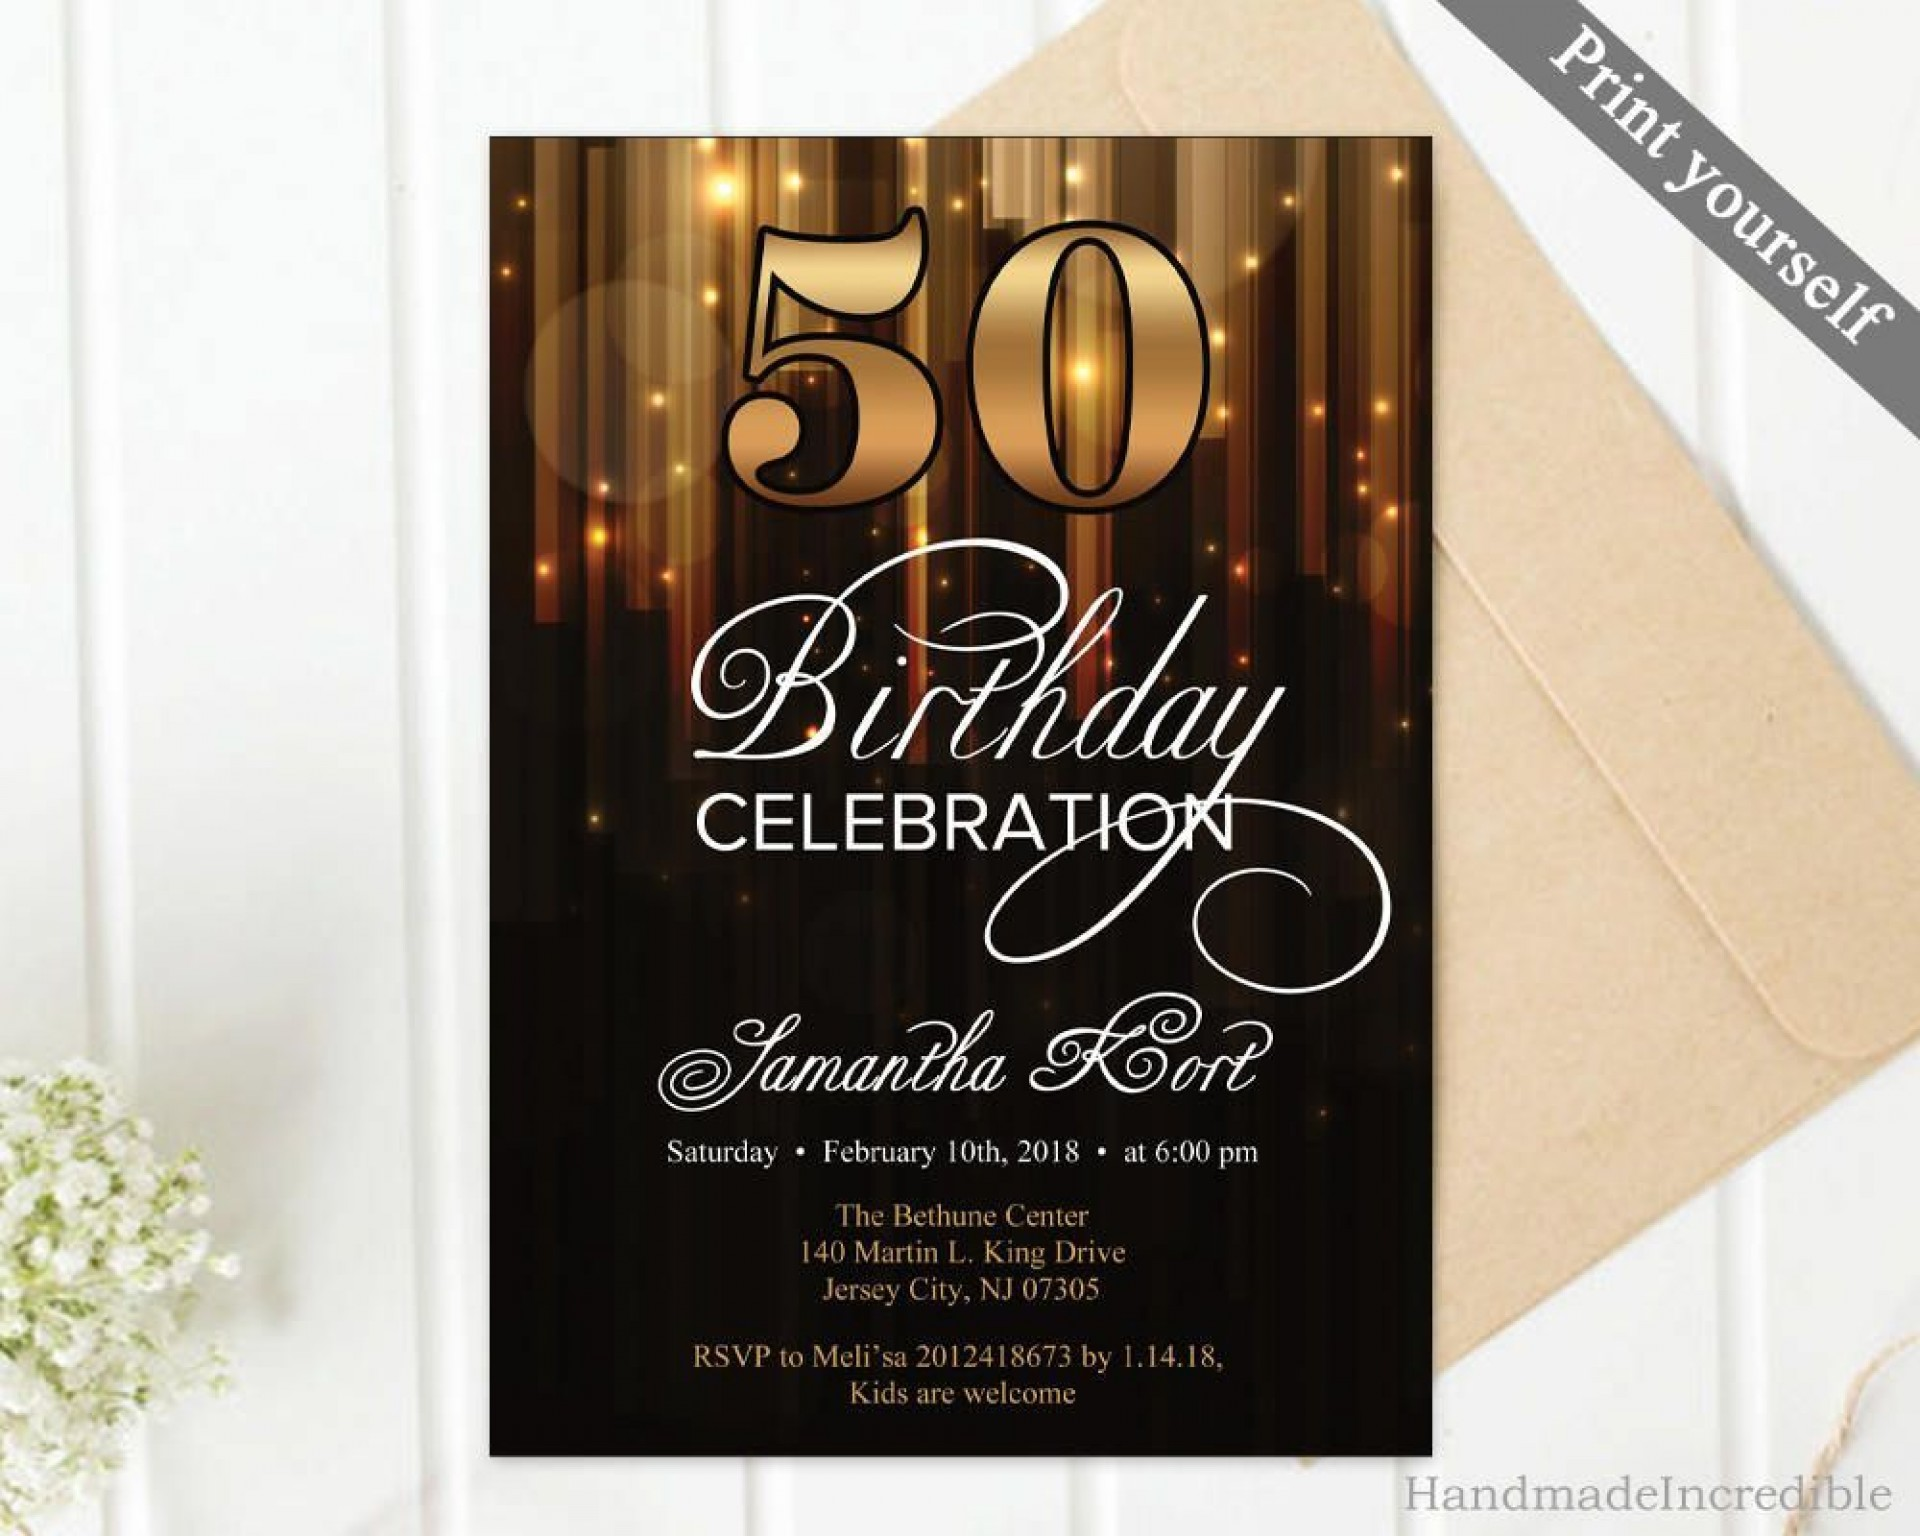 004 Breathtaking 50th Birthday Invitation Template Concept  For Him Microsoft Word Free1920